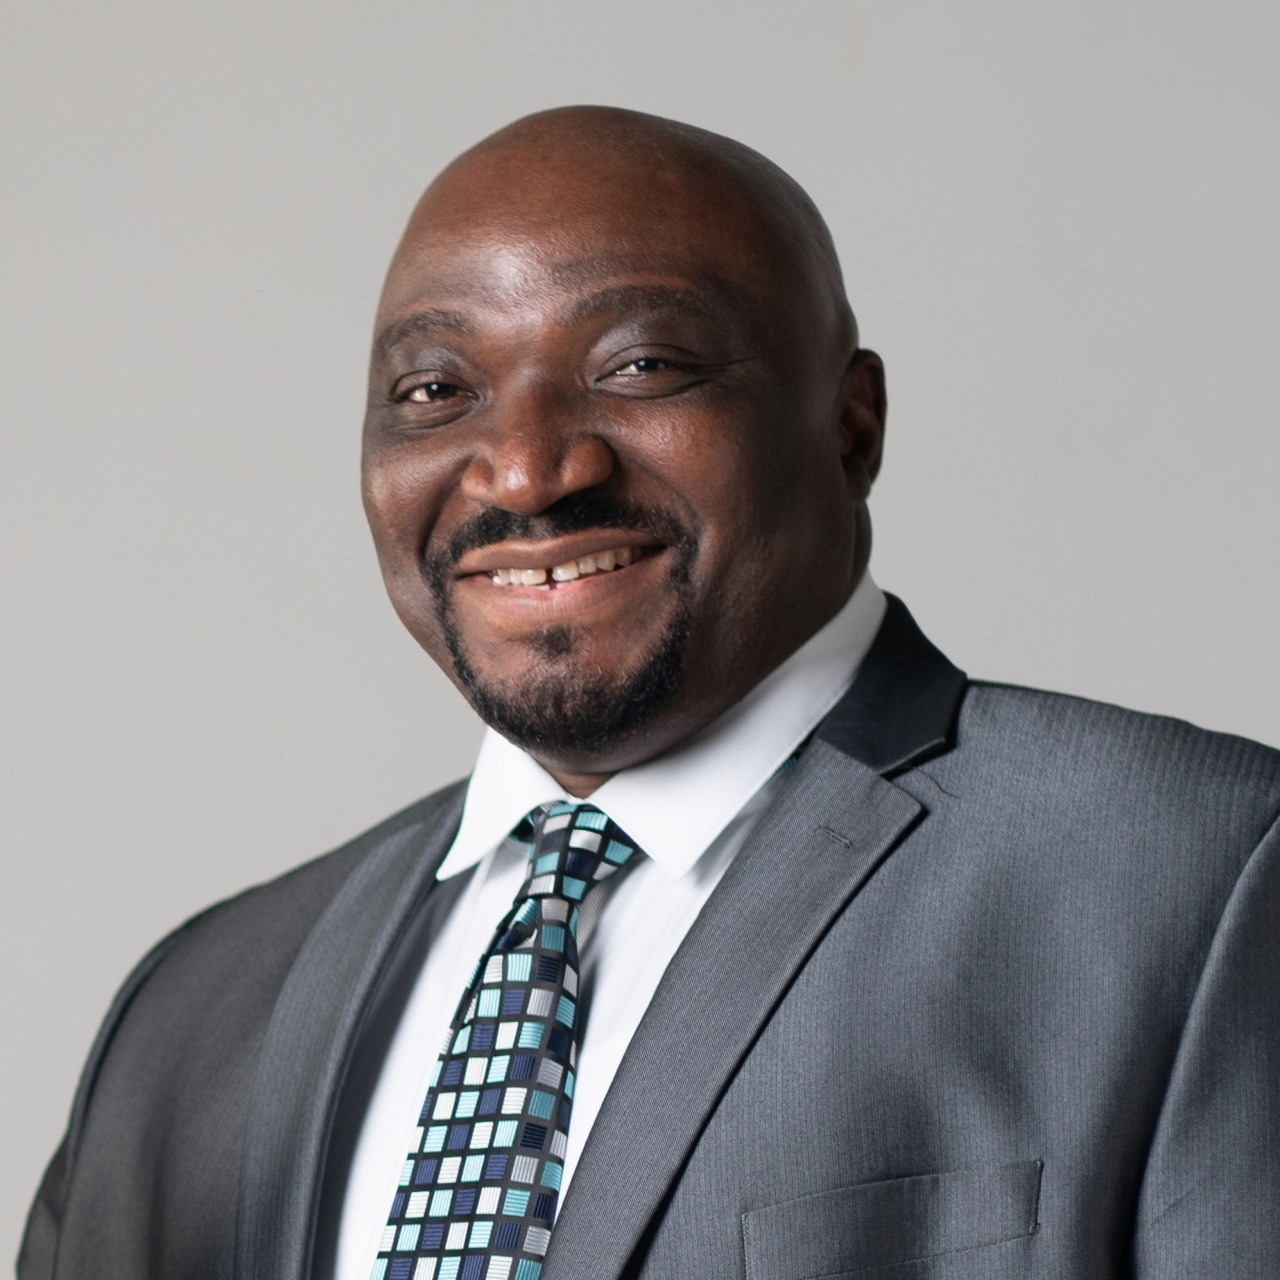 Malcolm Fabiyi, 3Degrees' new chief operating officer